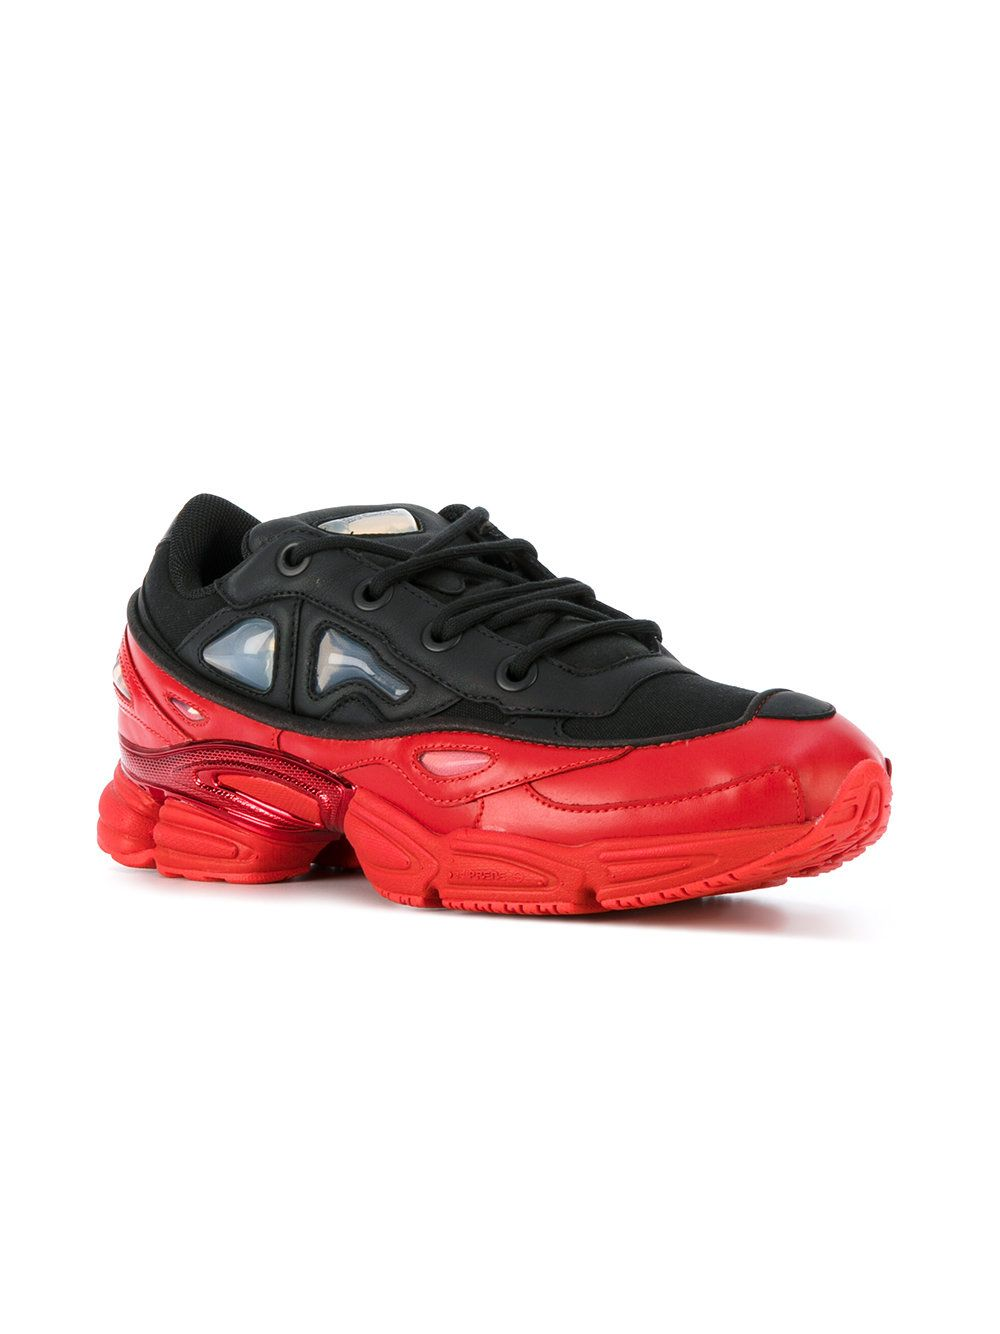 Adidas By Raf Simons Black Red Ozweego III Trainers | Get